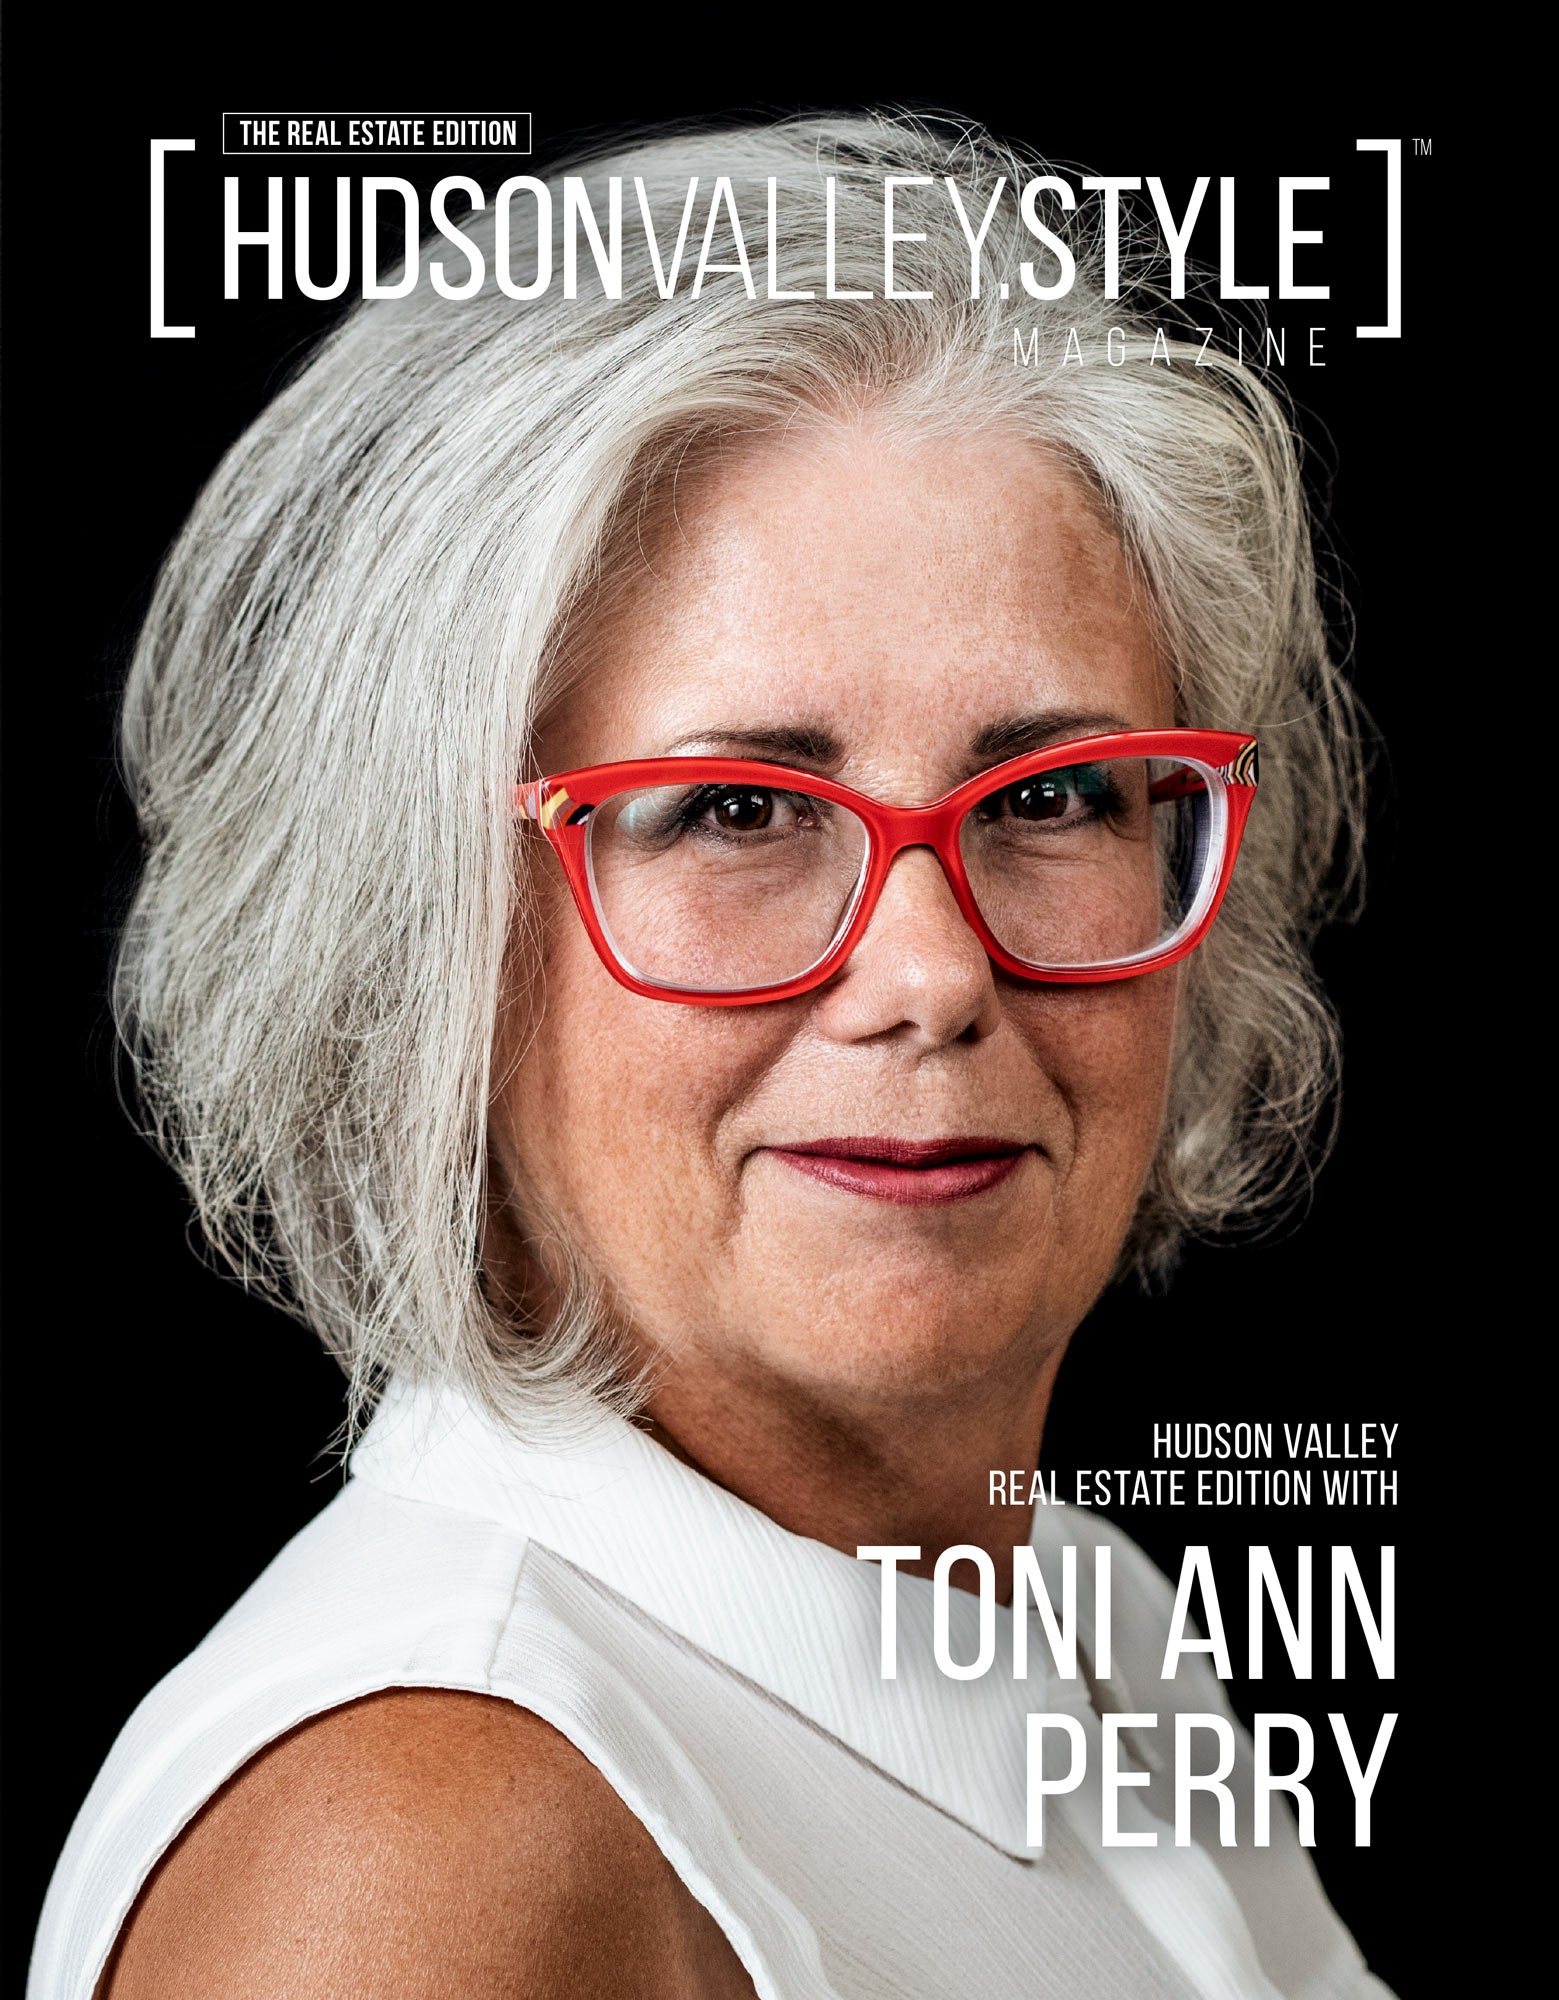 Cover Story - Special Real Estate Edition with Toni Ann Perry - Hudson Valley Style Magazine